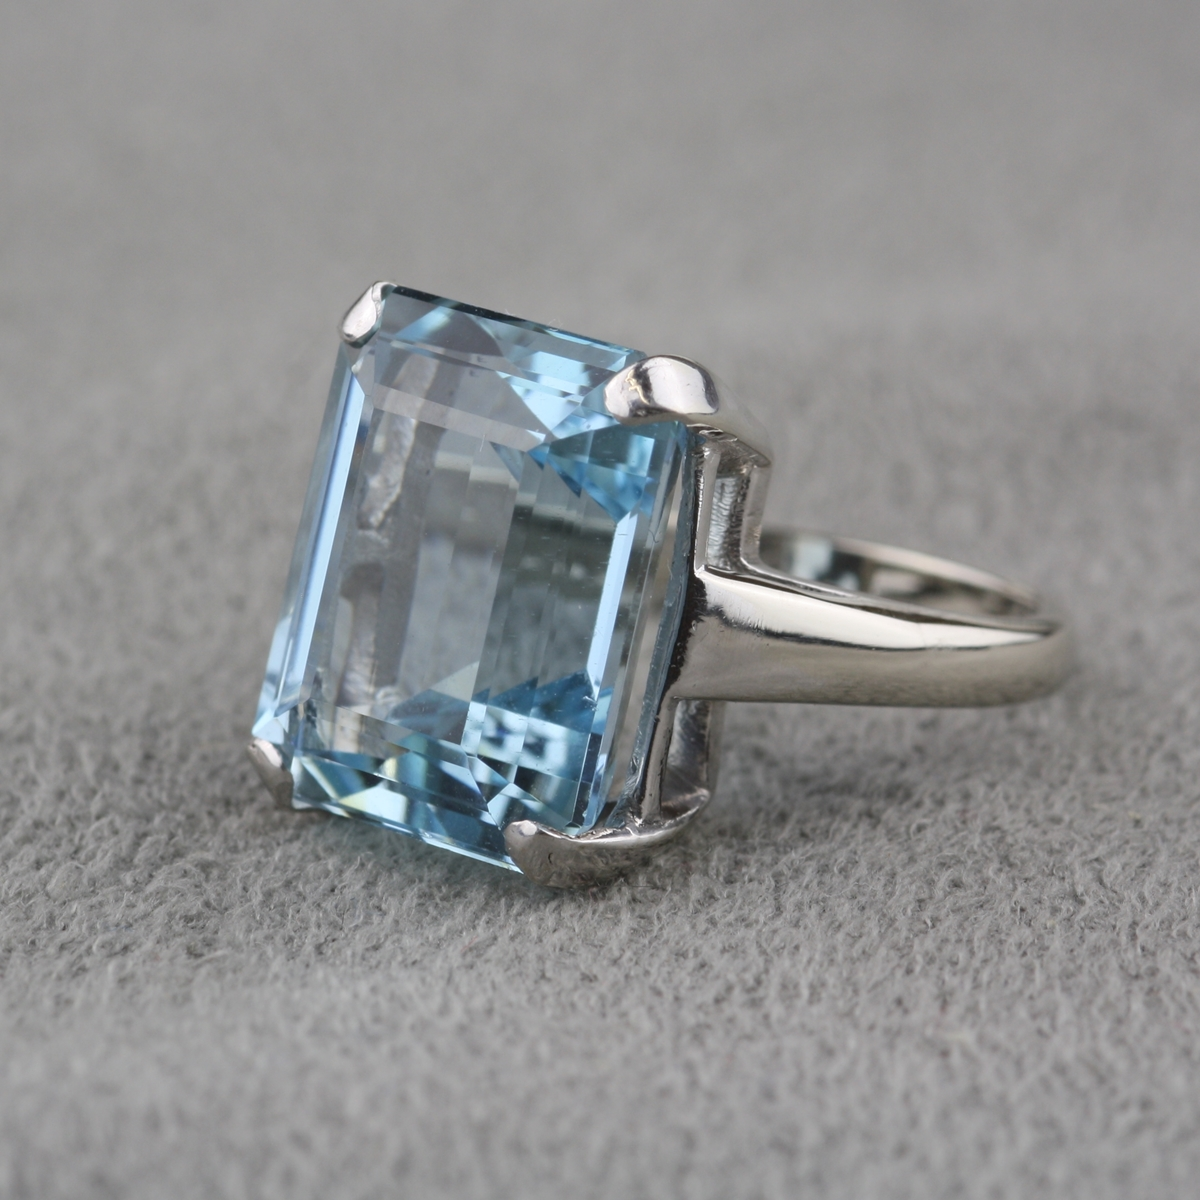 How To Clean My White Gold Ring At Home